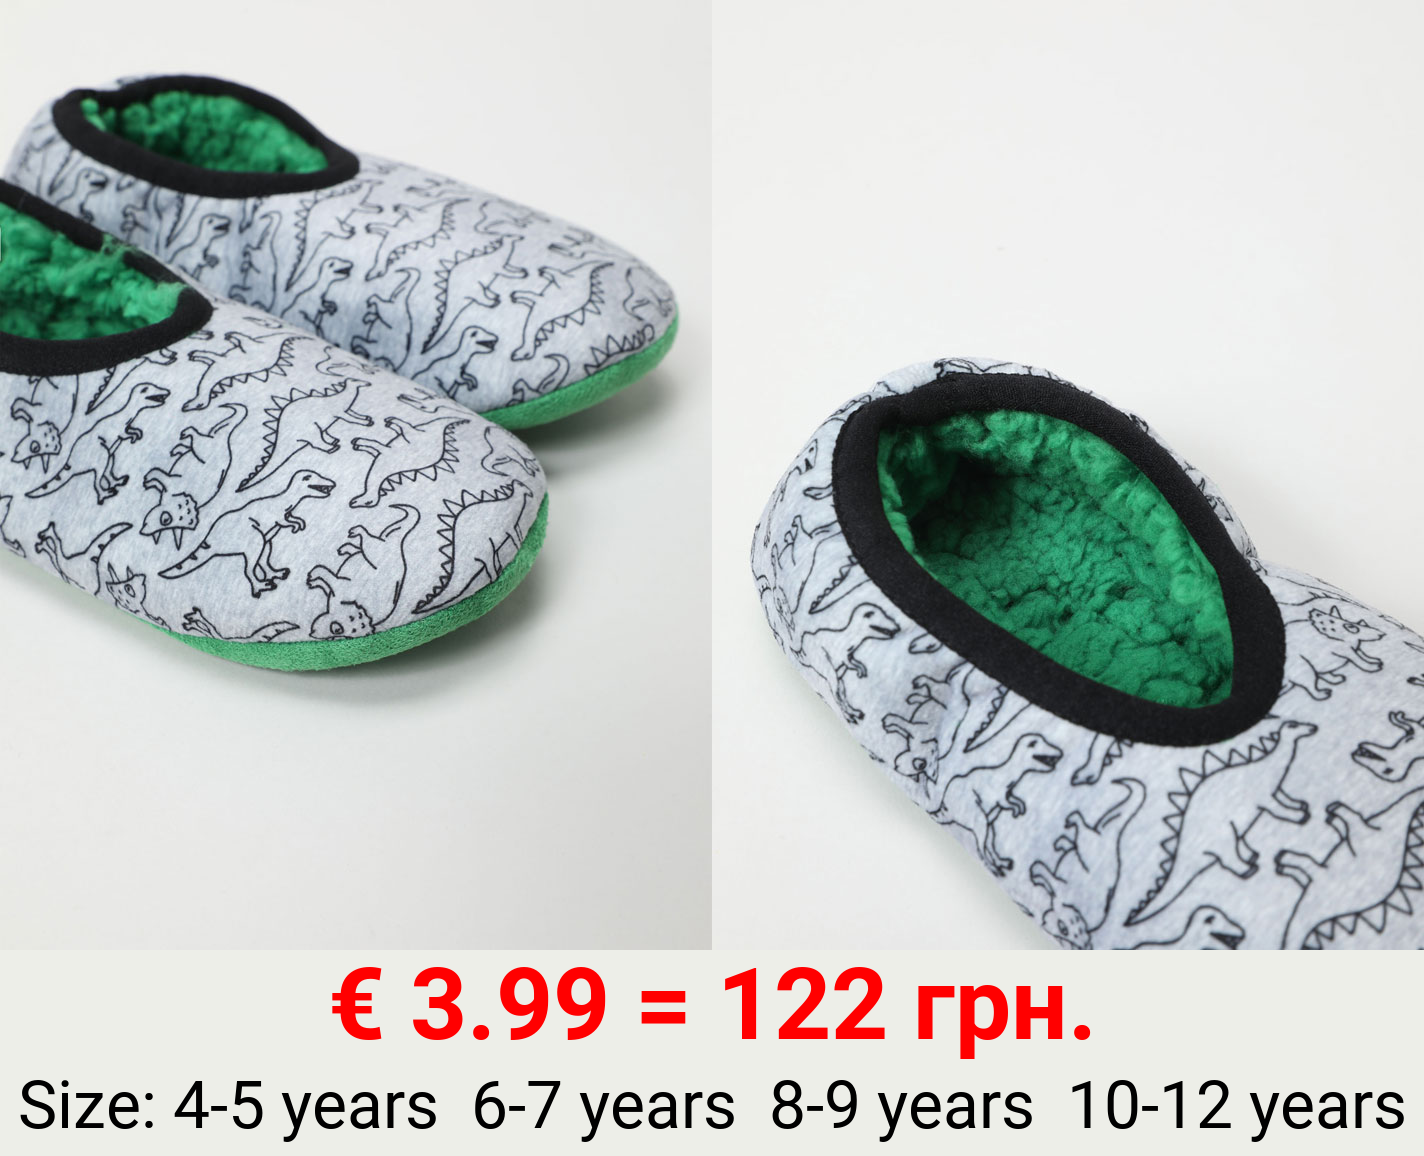 Sock-style slippers with extra warm interior